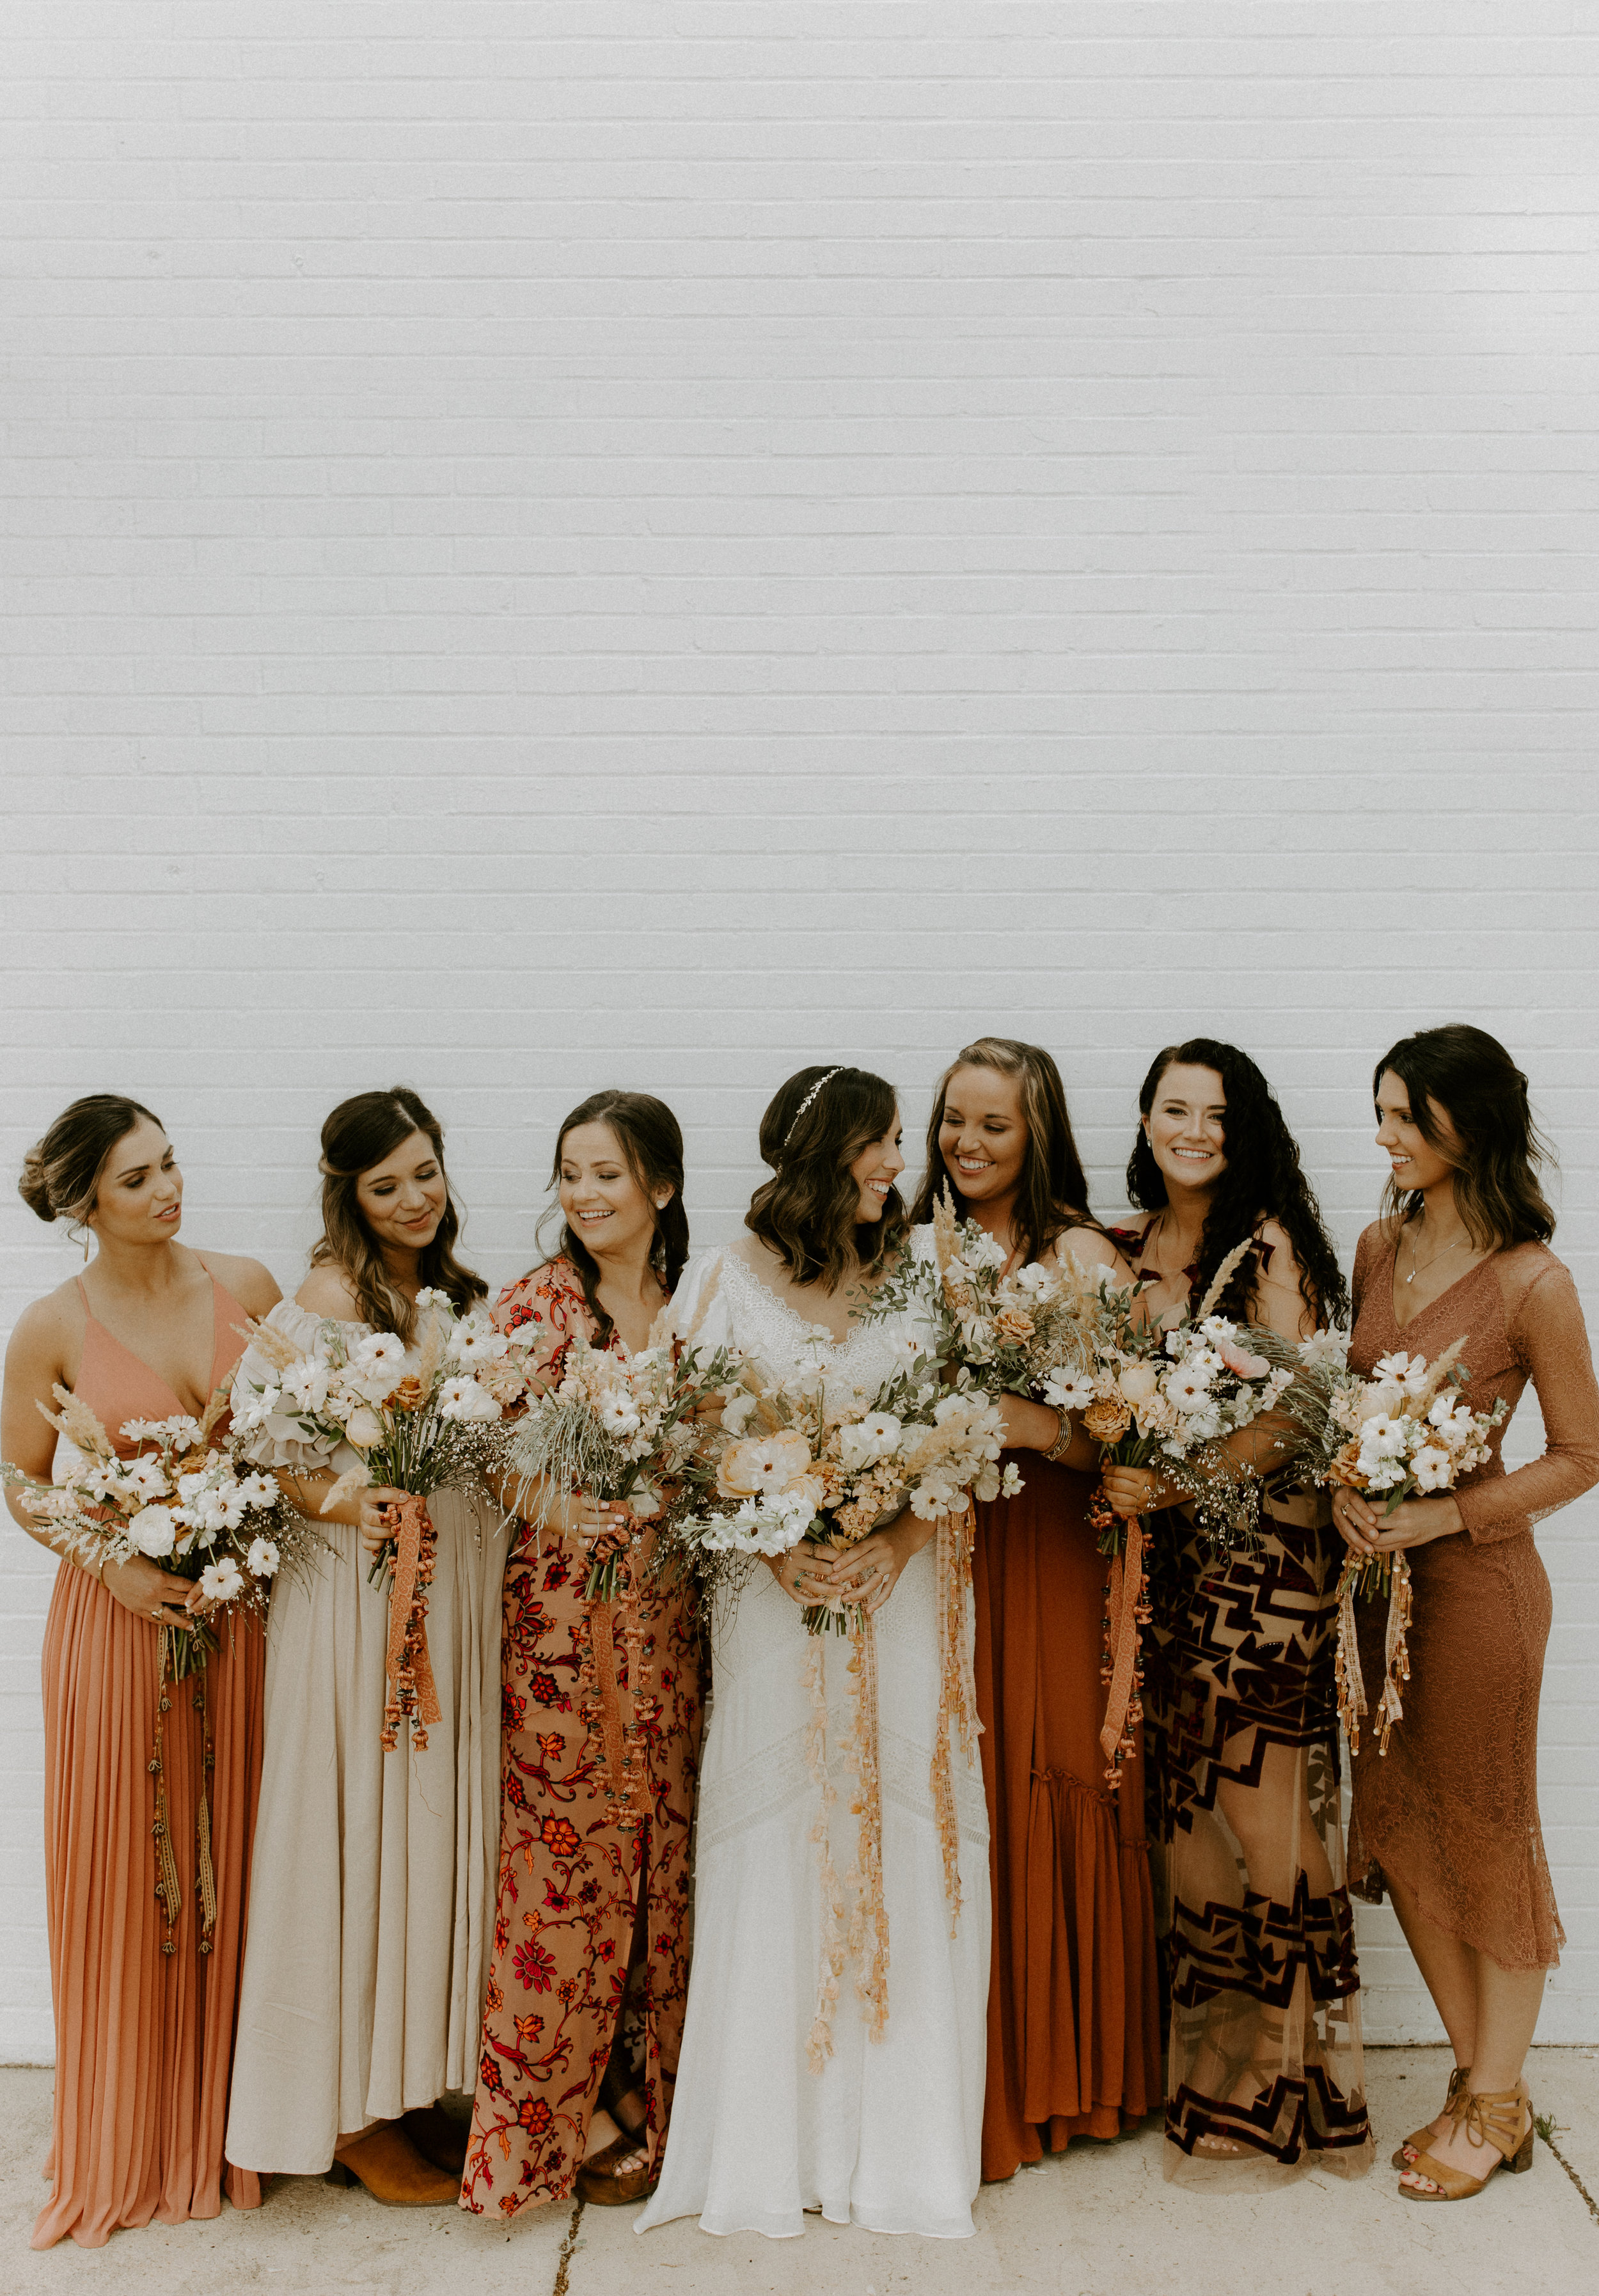 riley+carsonbridalparty-29.jpg